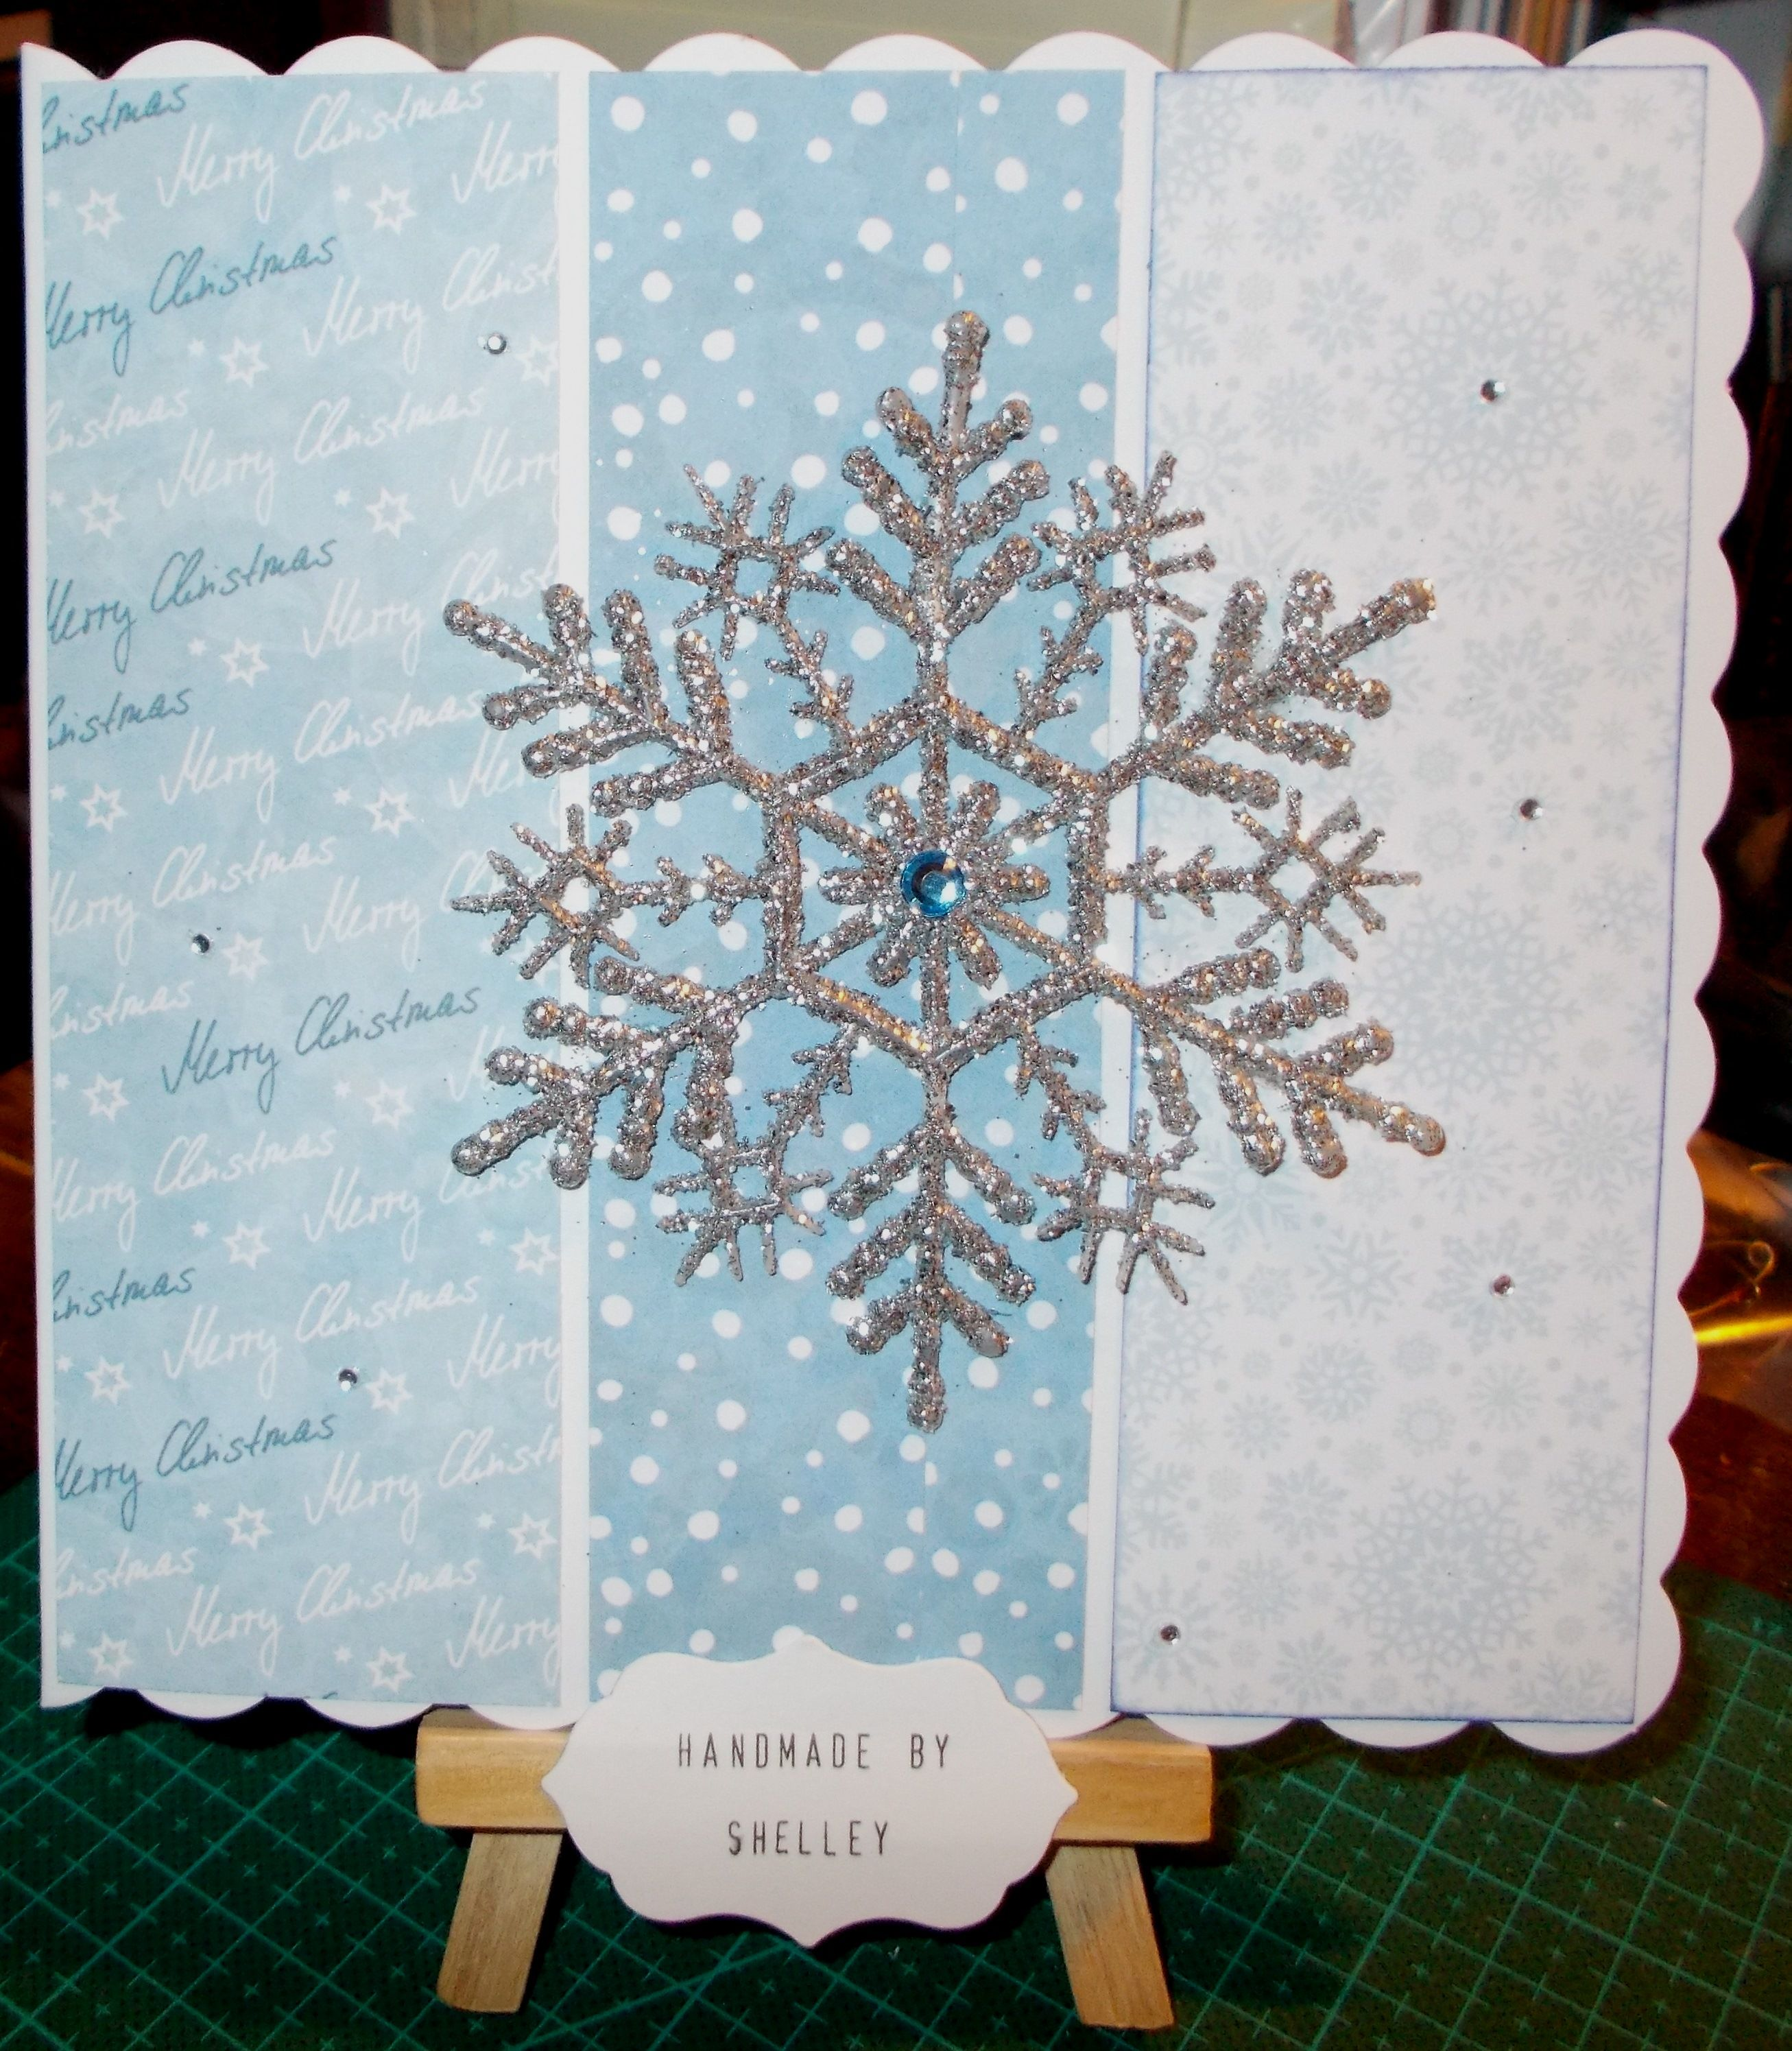 Snowflake tree decoration from Asda. Frosty Christmas